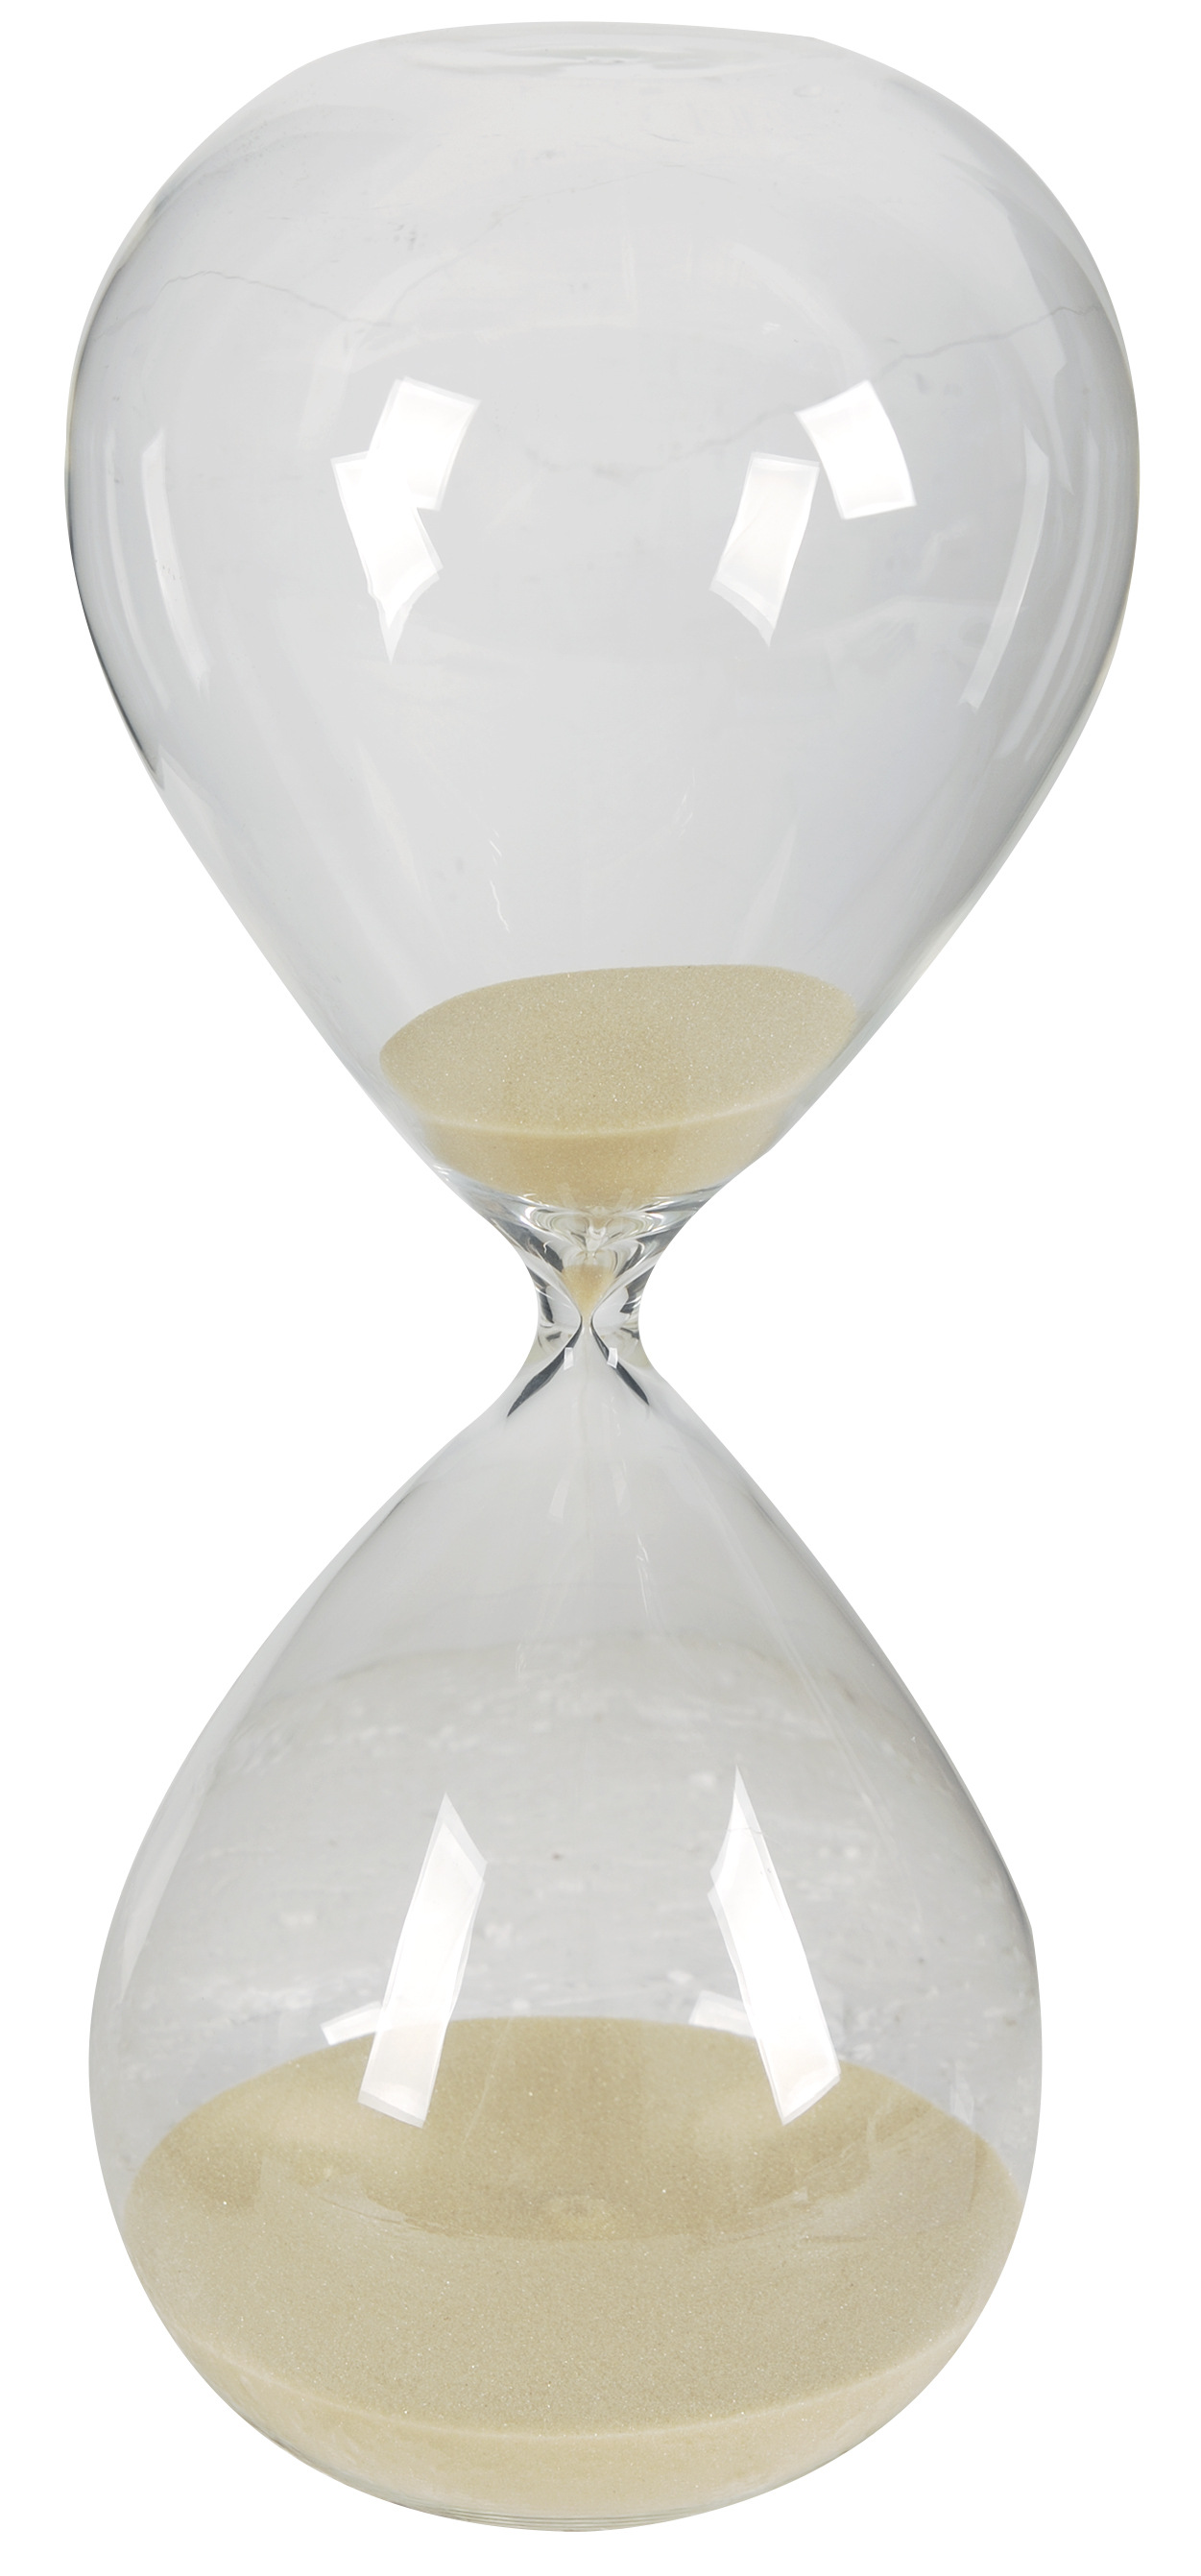 A&B Home Hour Glass Sand Timer (2 Hrs), Tan by A&B Home